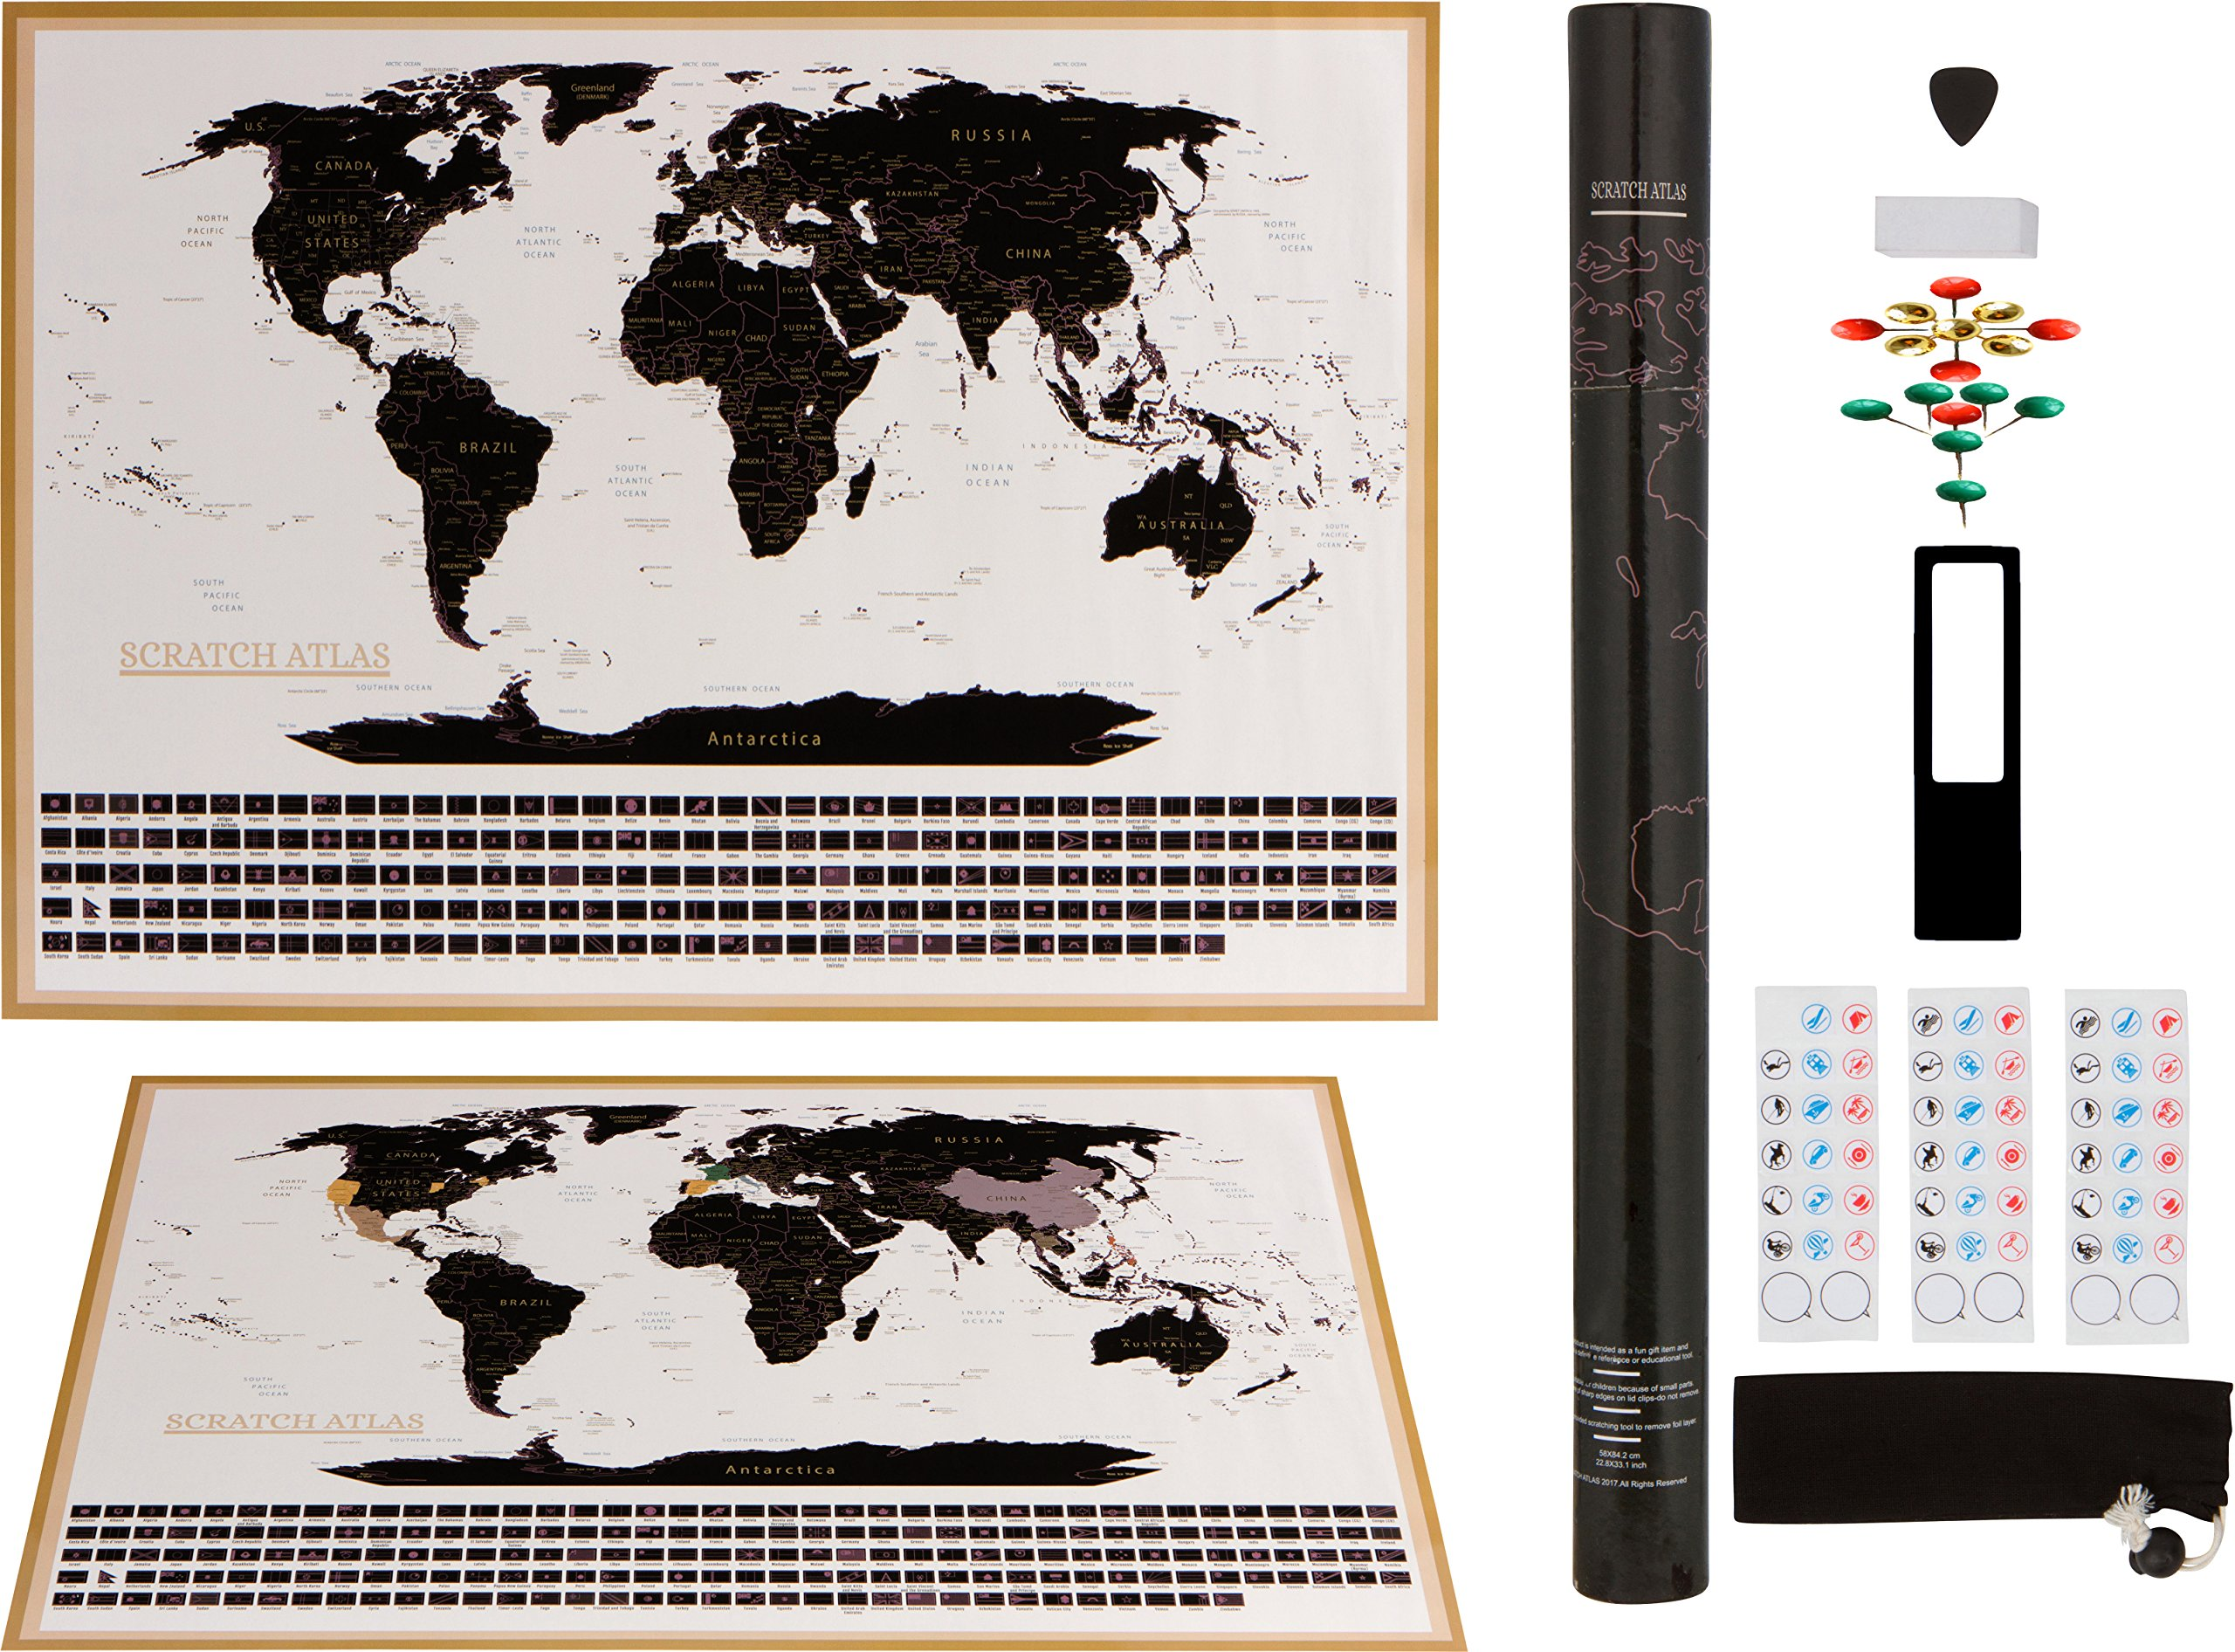 Scratch Off World Map Complete Set with US States and Country Flags, Best Travel Poster gift, Perfect Travelers Wall Decal, Professionally Designed Detailed Cartography (33.15 x 22.84inches A1 Frame)